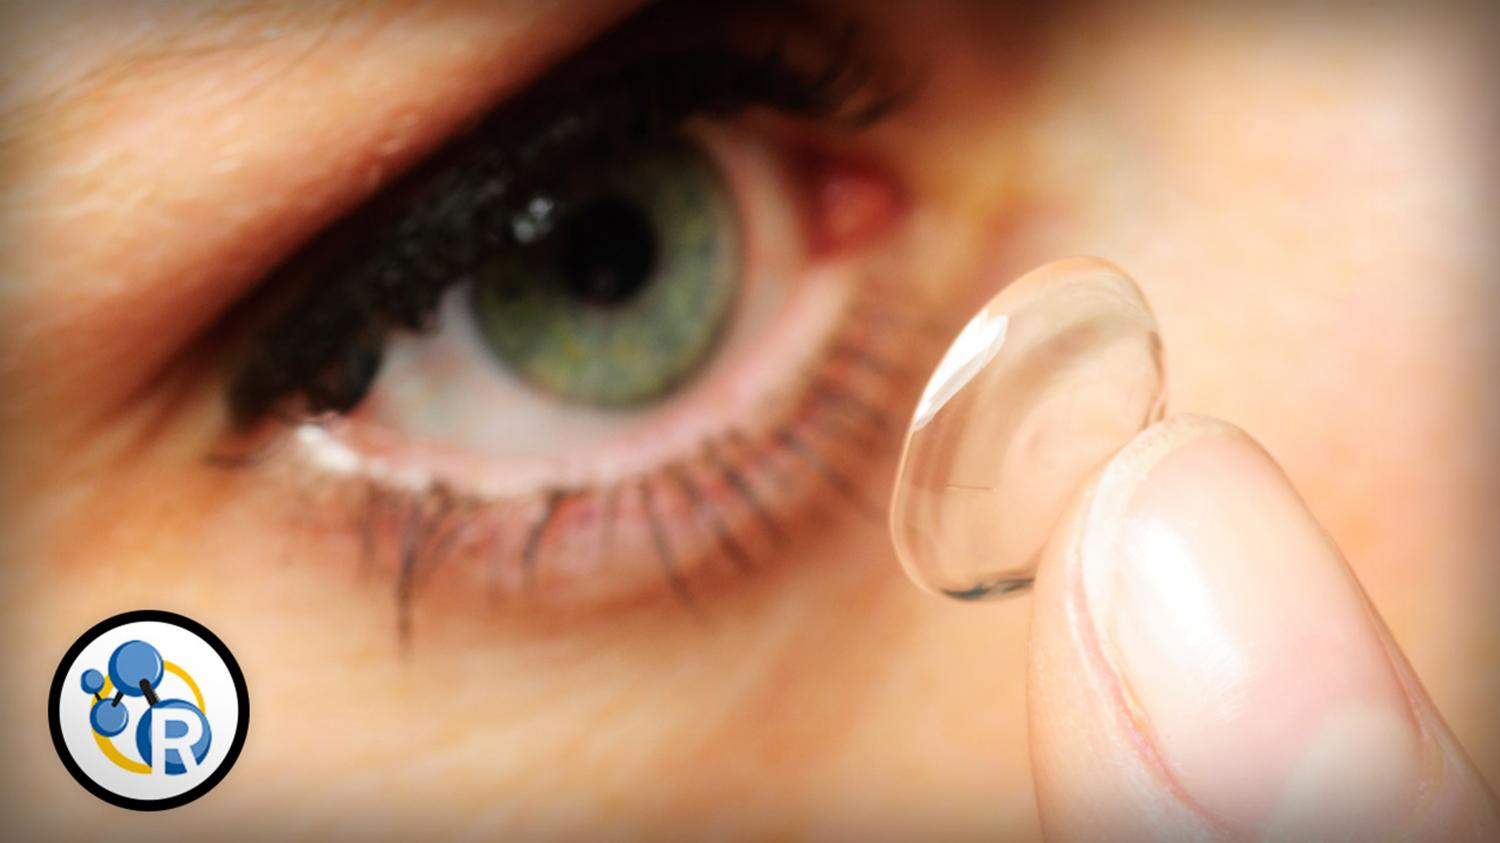 Contact: Video: Can Contact Lenses Make You Blind?